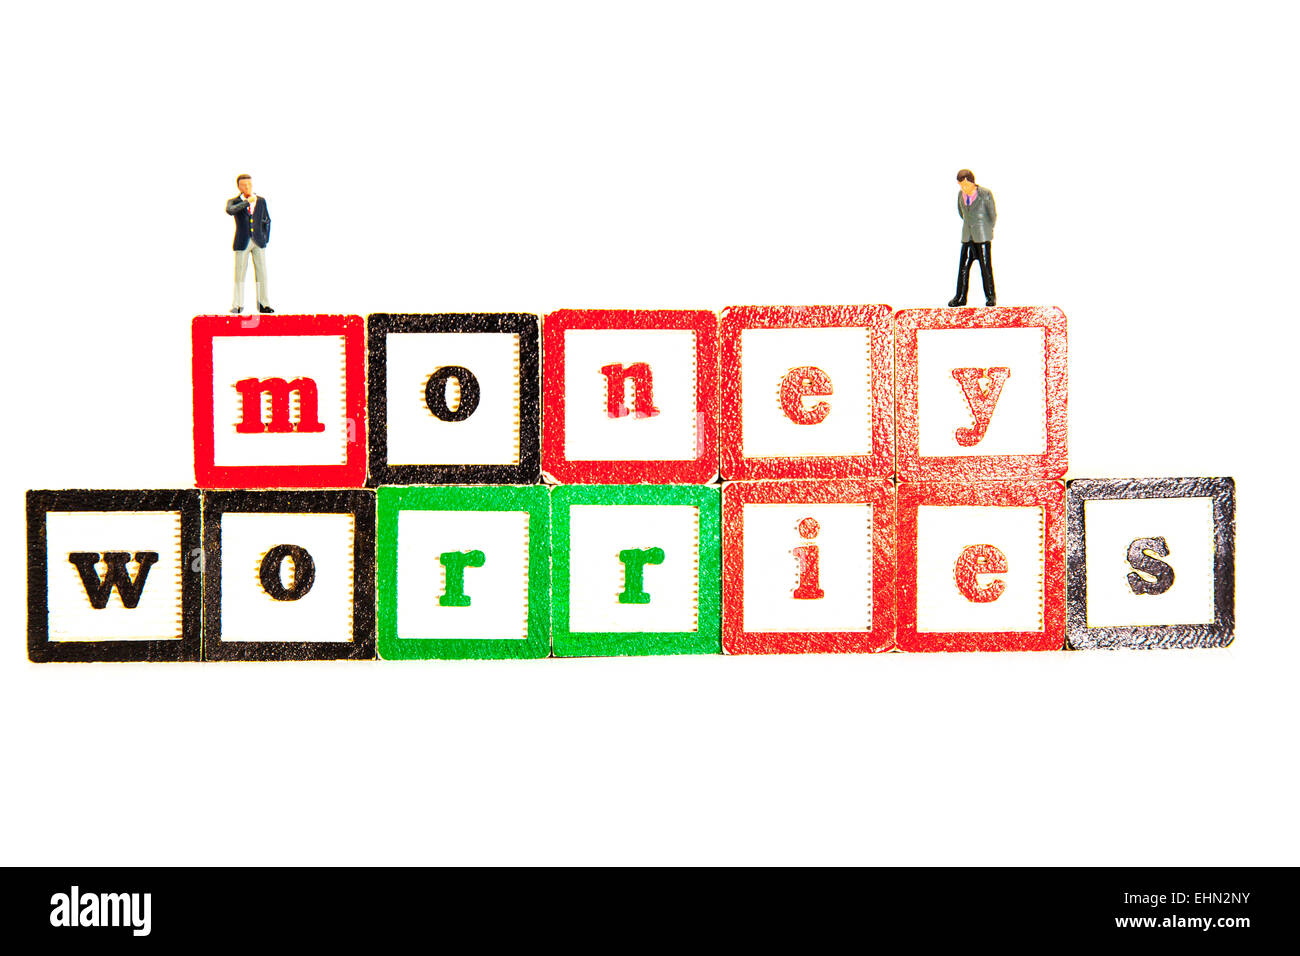 money worries worry about debt debts bankruptcy words isolated cut out cutout white background - Stock Image